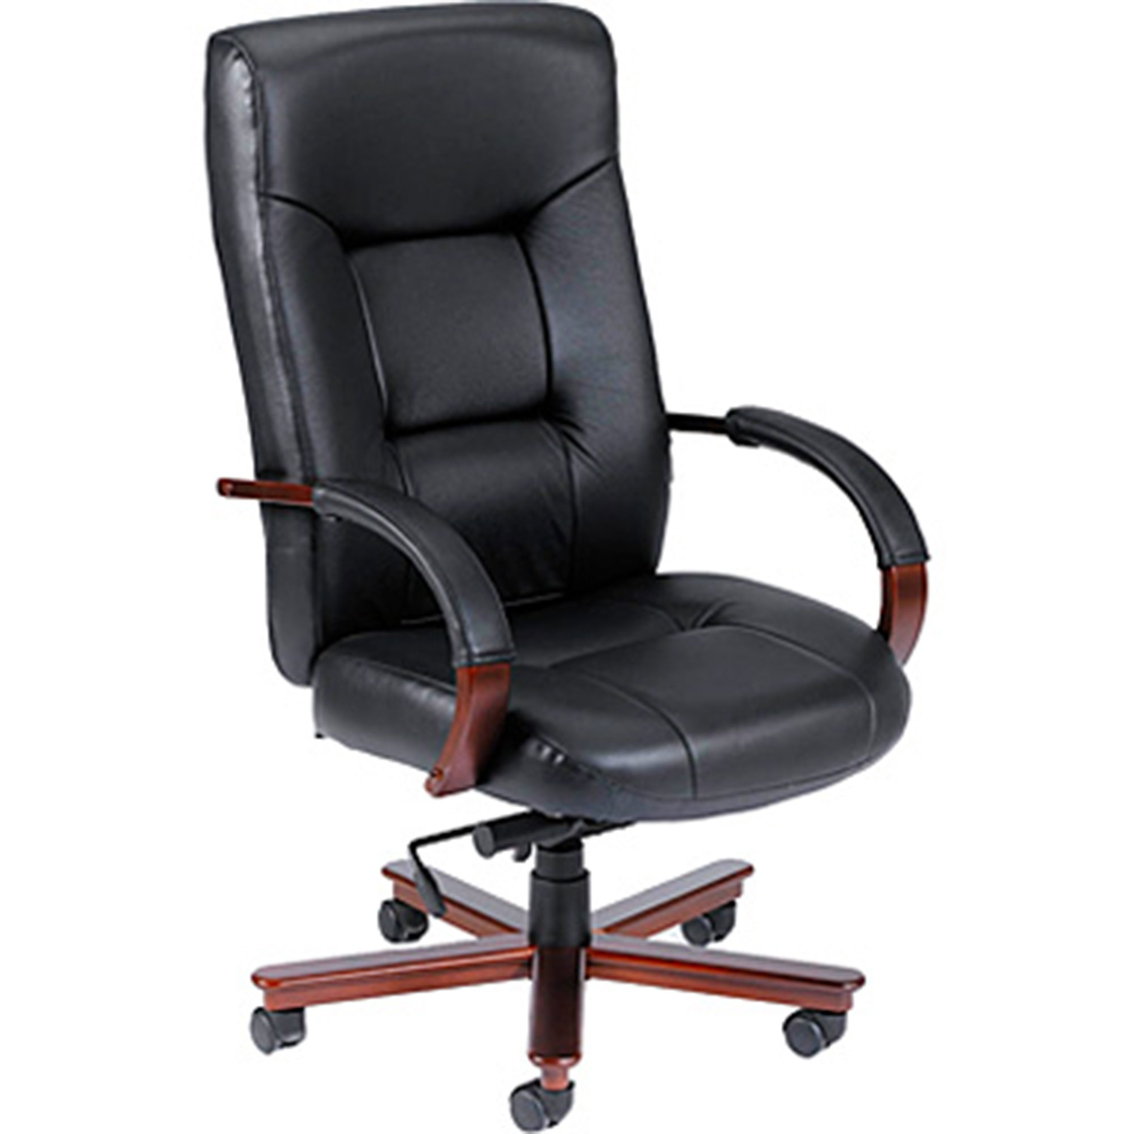 Top Grain Leather Office Chair Presidential Seating Black Top Grain Leather Computer